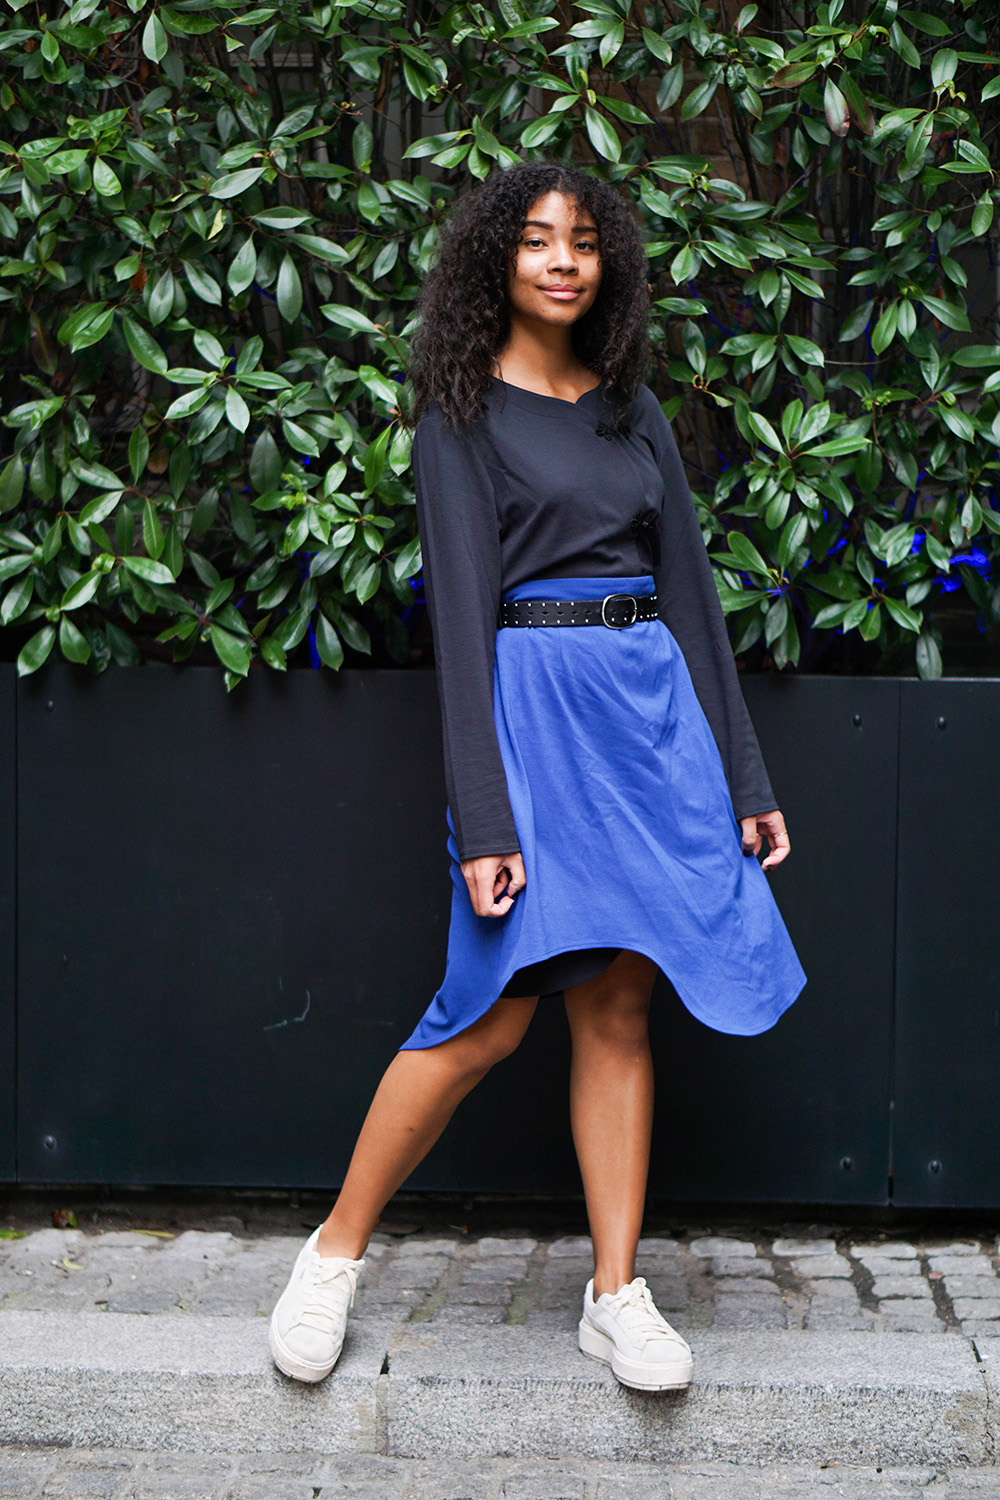 Sara Flaaen in our phantom cardigan and put a skirt over the cardigan.